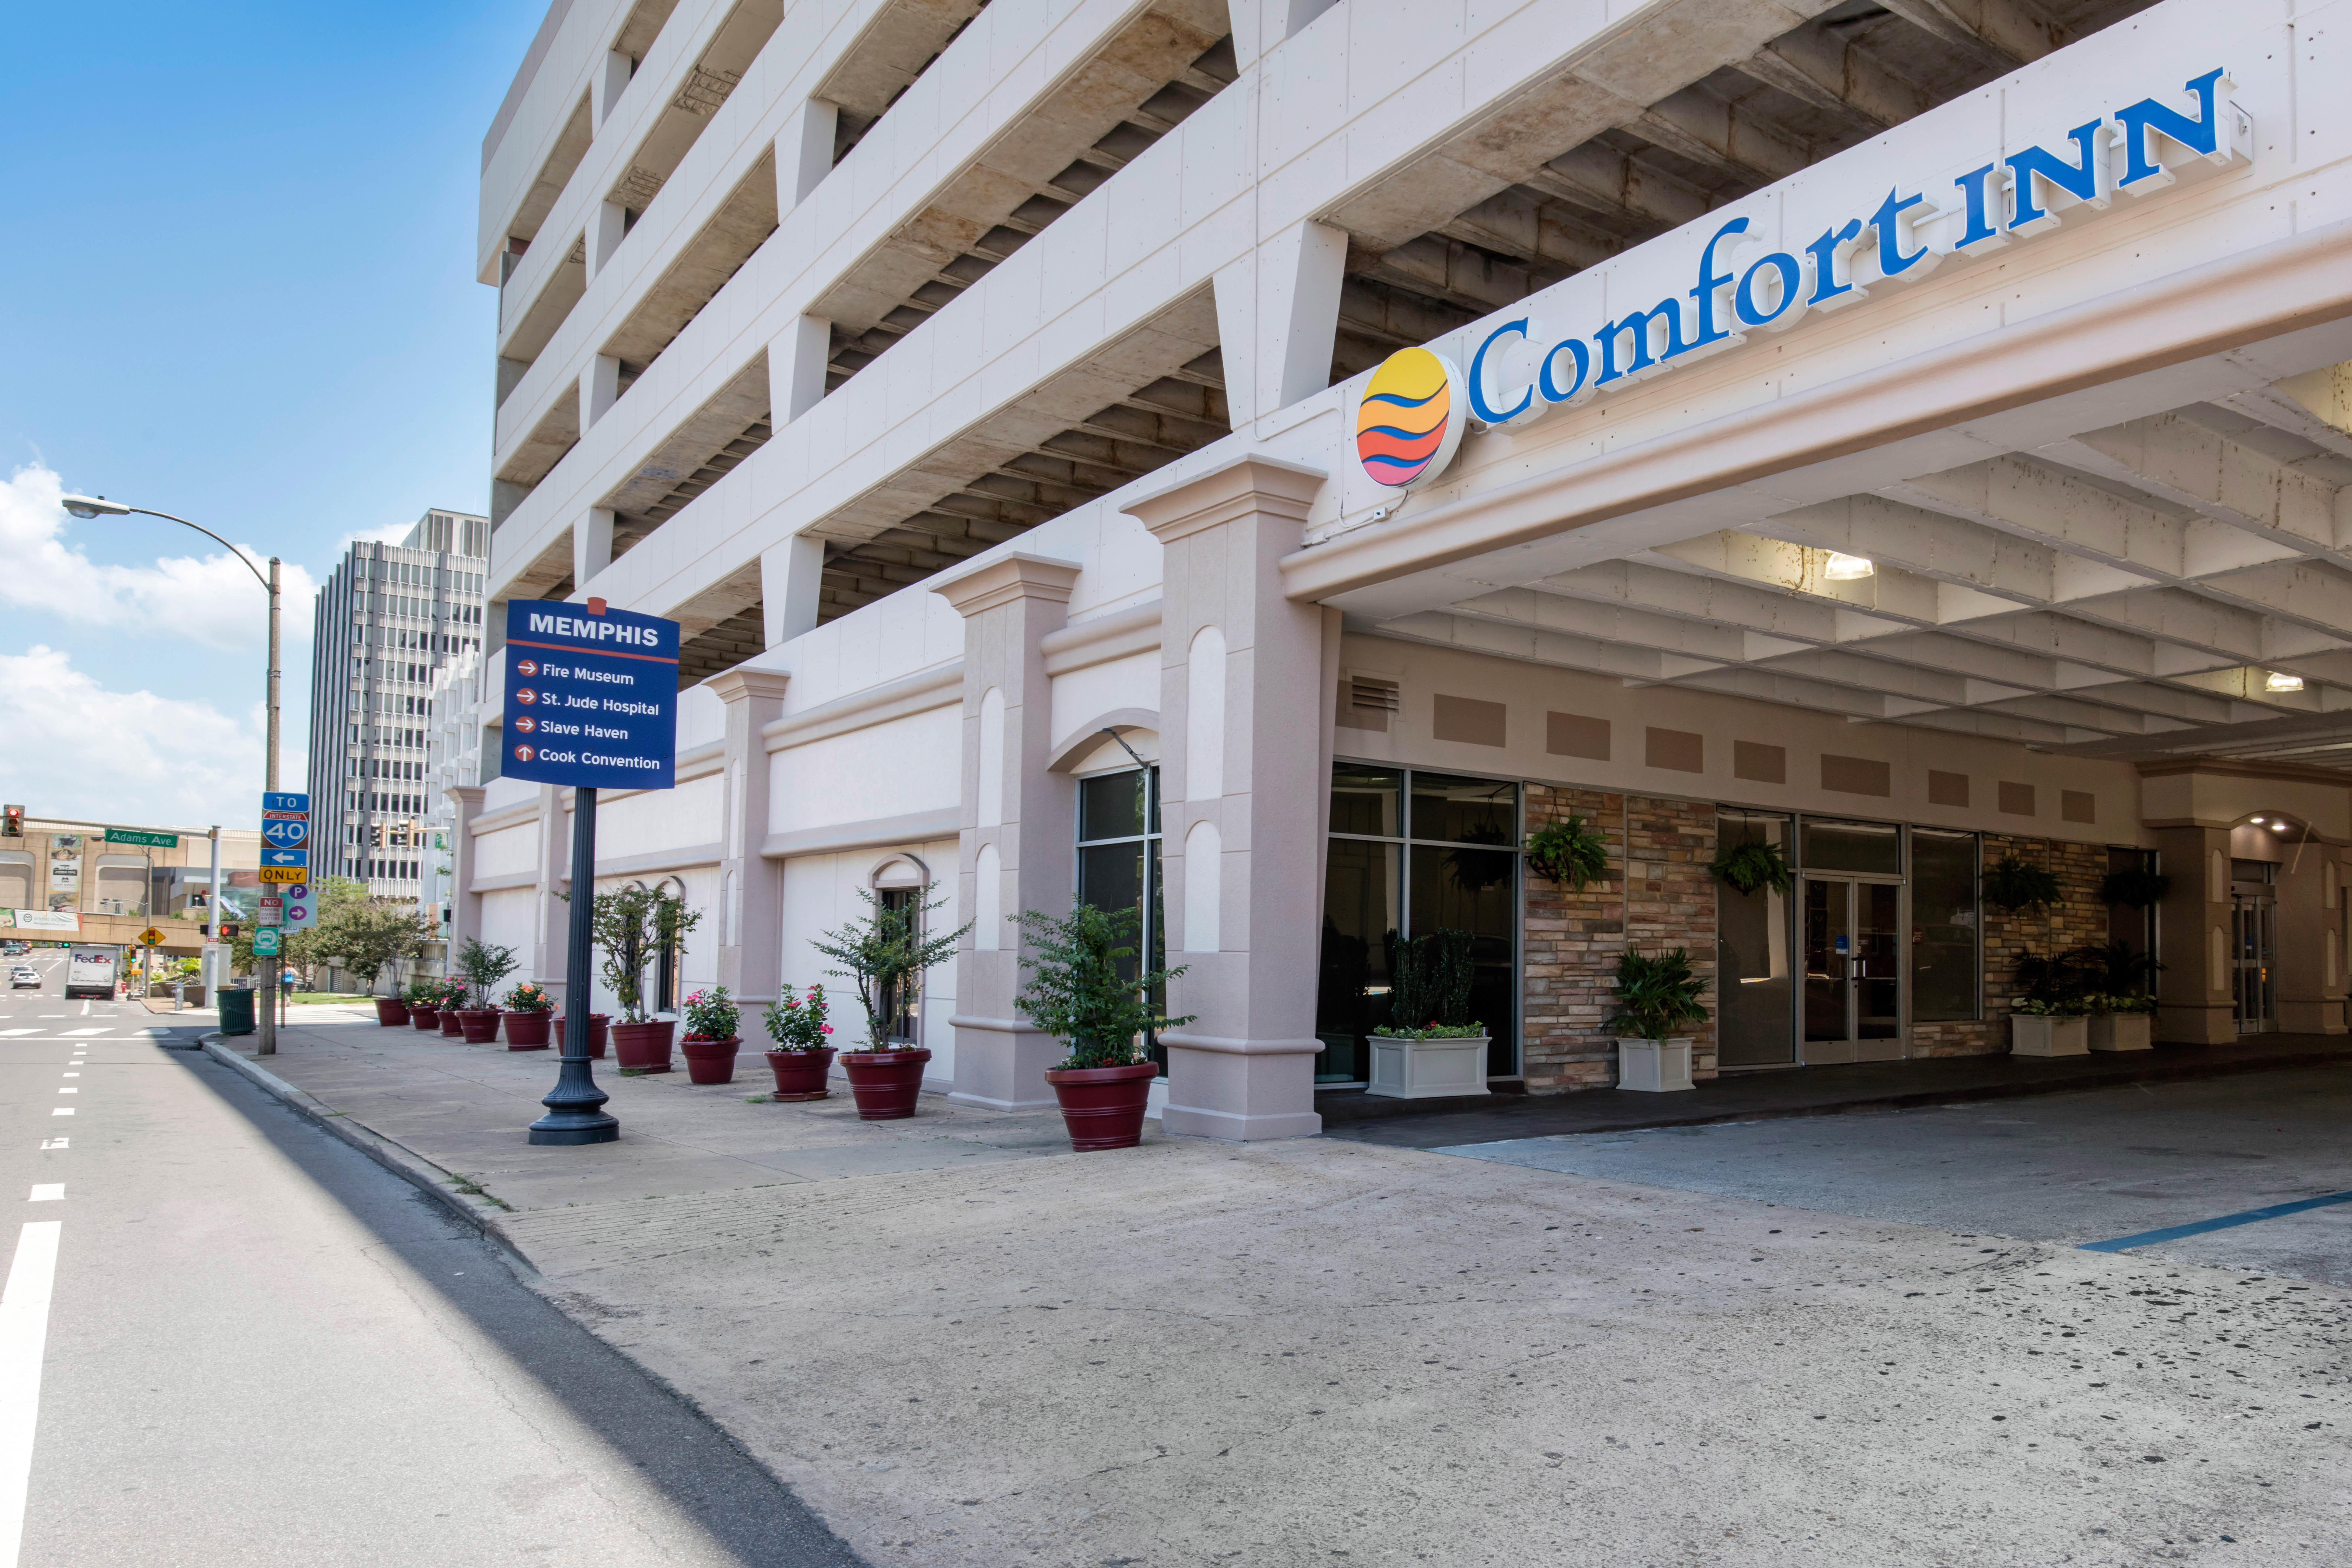 Comfort inn downtown in memphis tn 38103 for Motels near graceland memphis tn